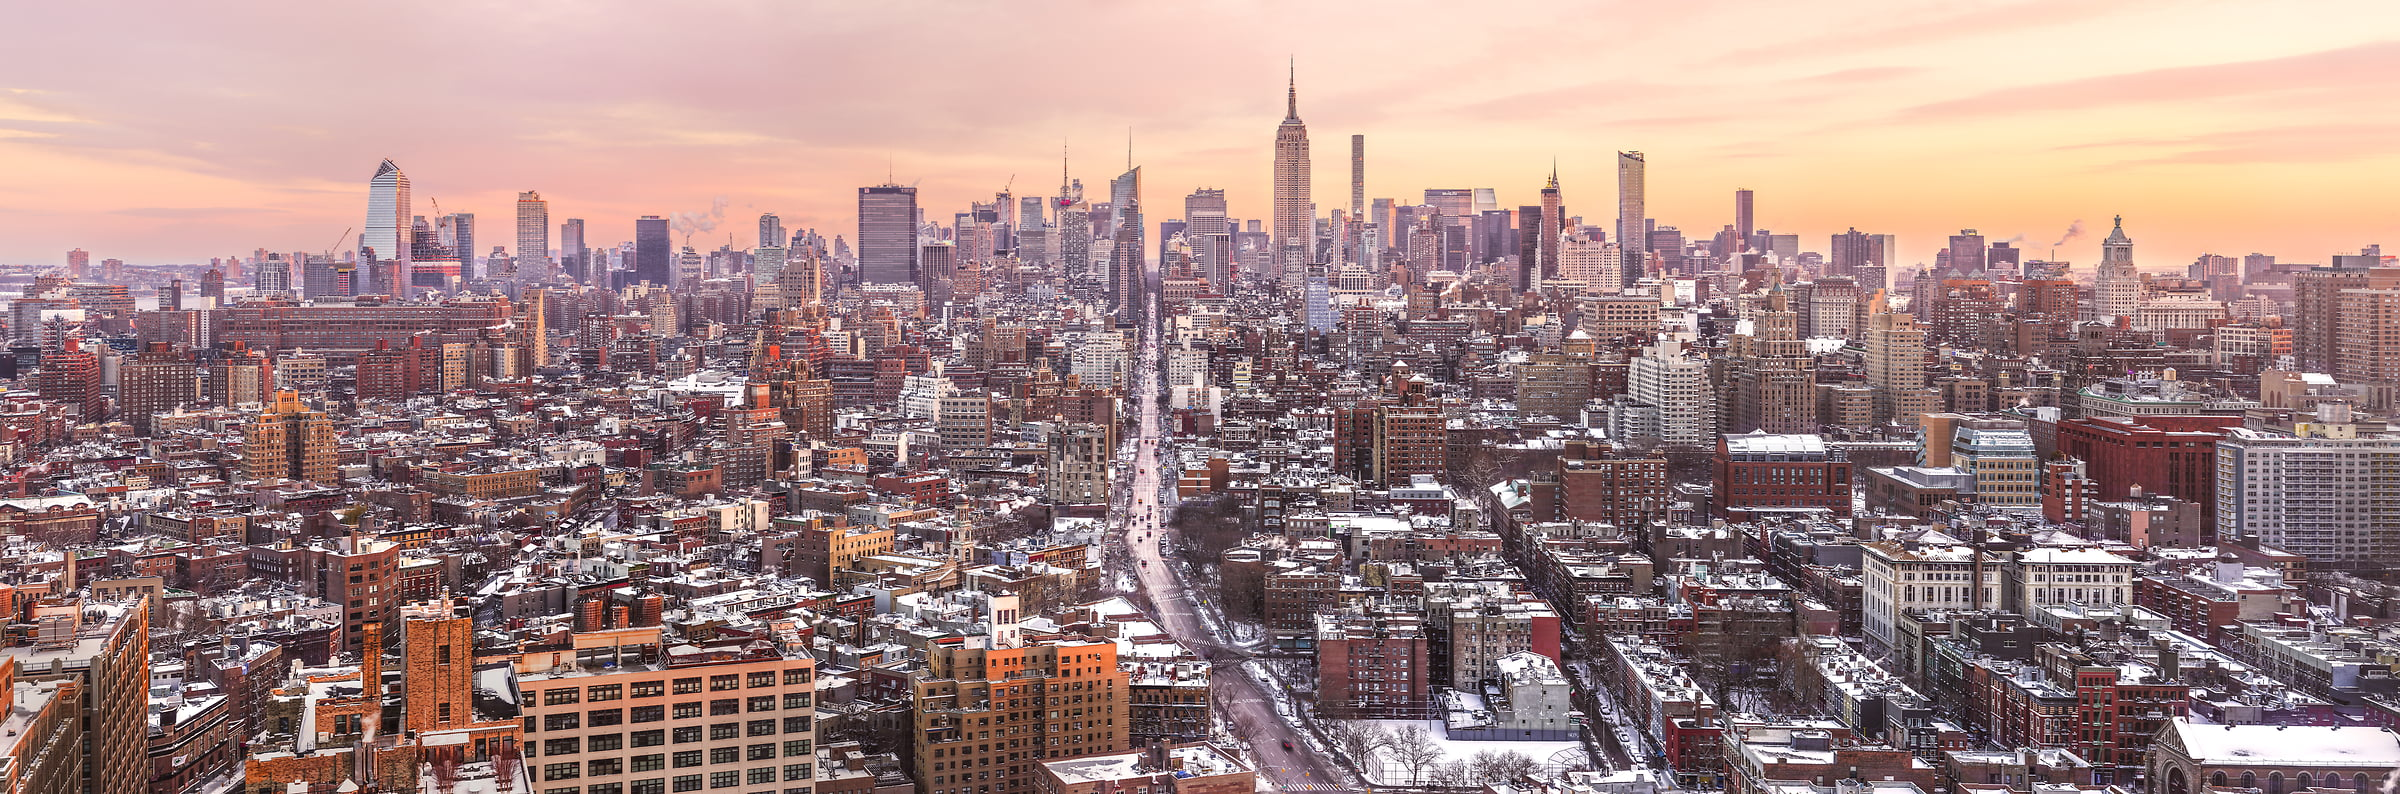 1,703 megapixels! A very high resolution, large-format VAST photo print of the NYC skyline in winter snow; cityscape sunrise fine art photo created by Dan Piech in New York City